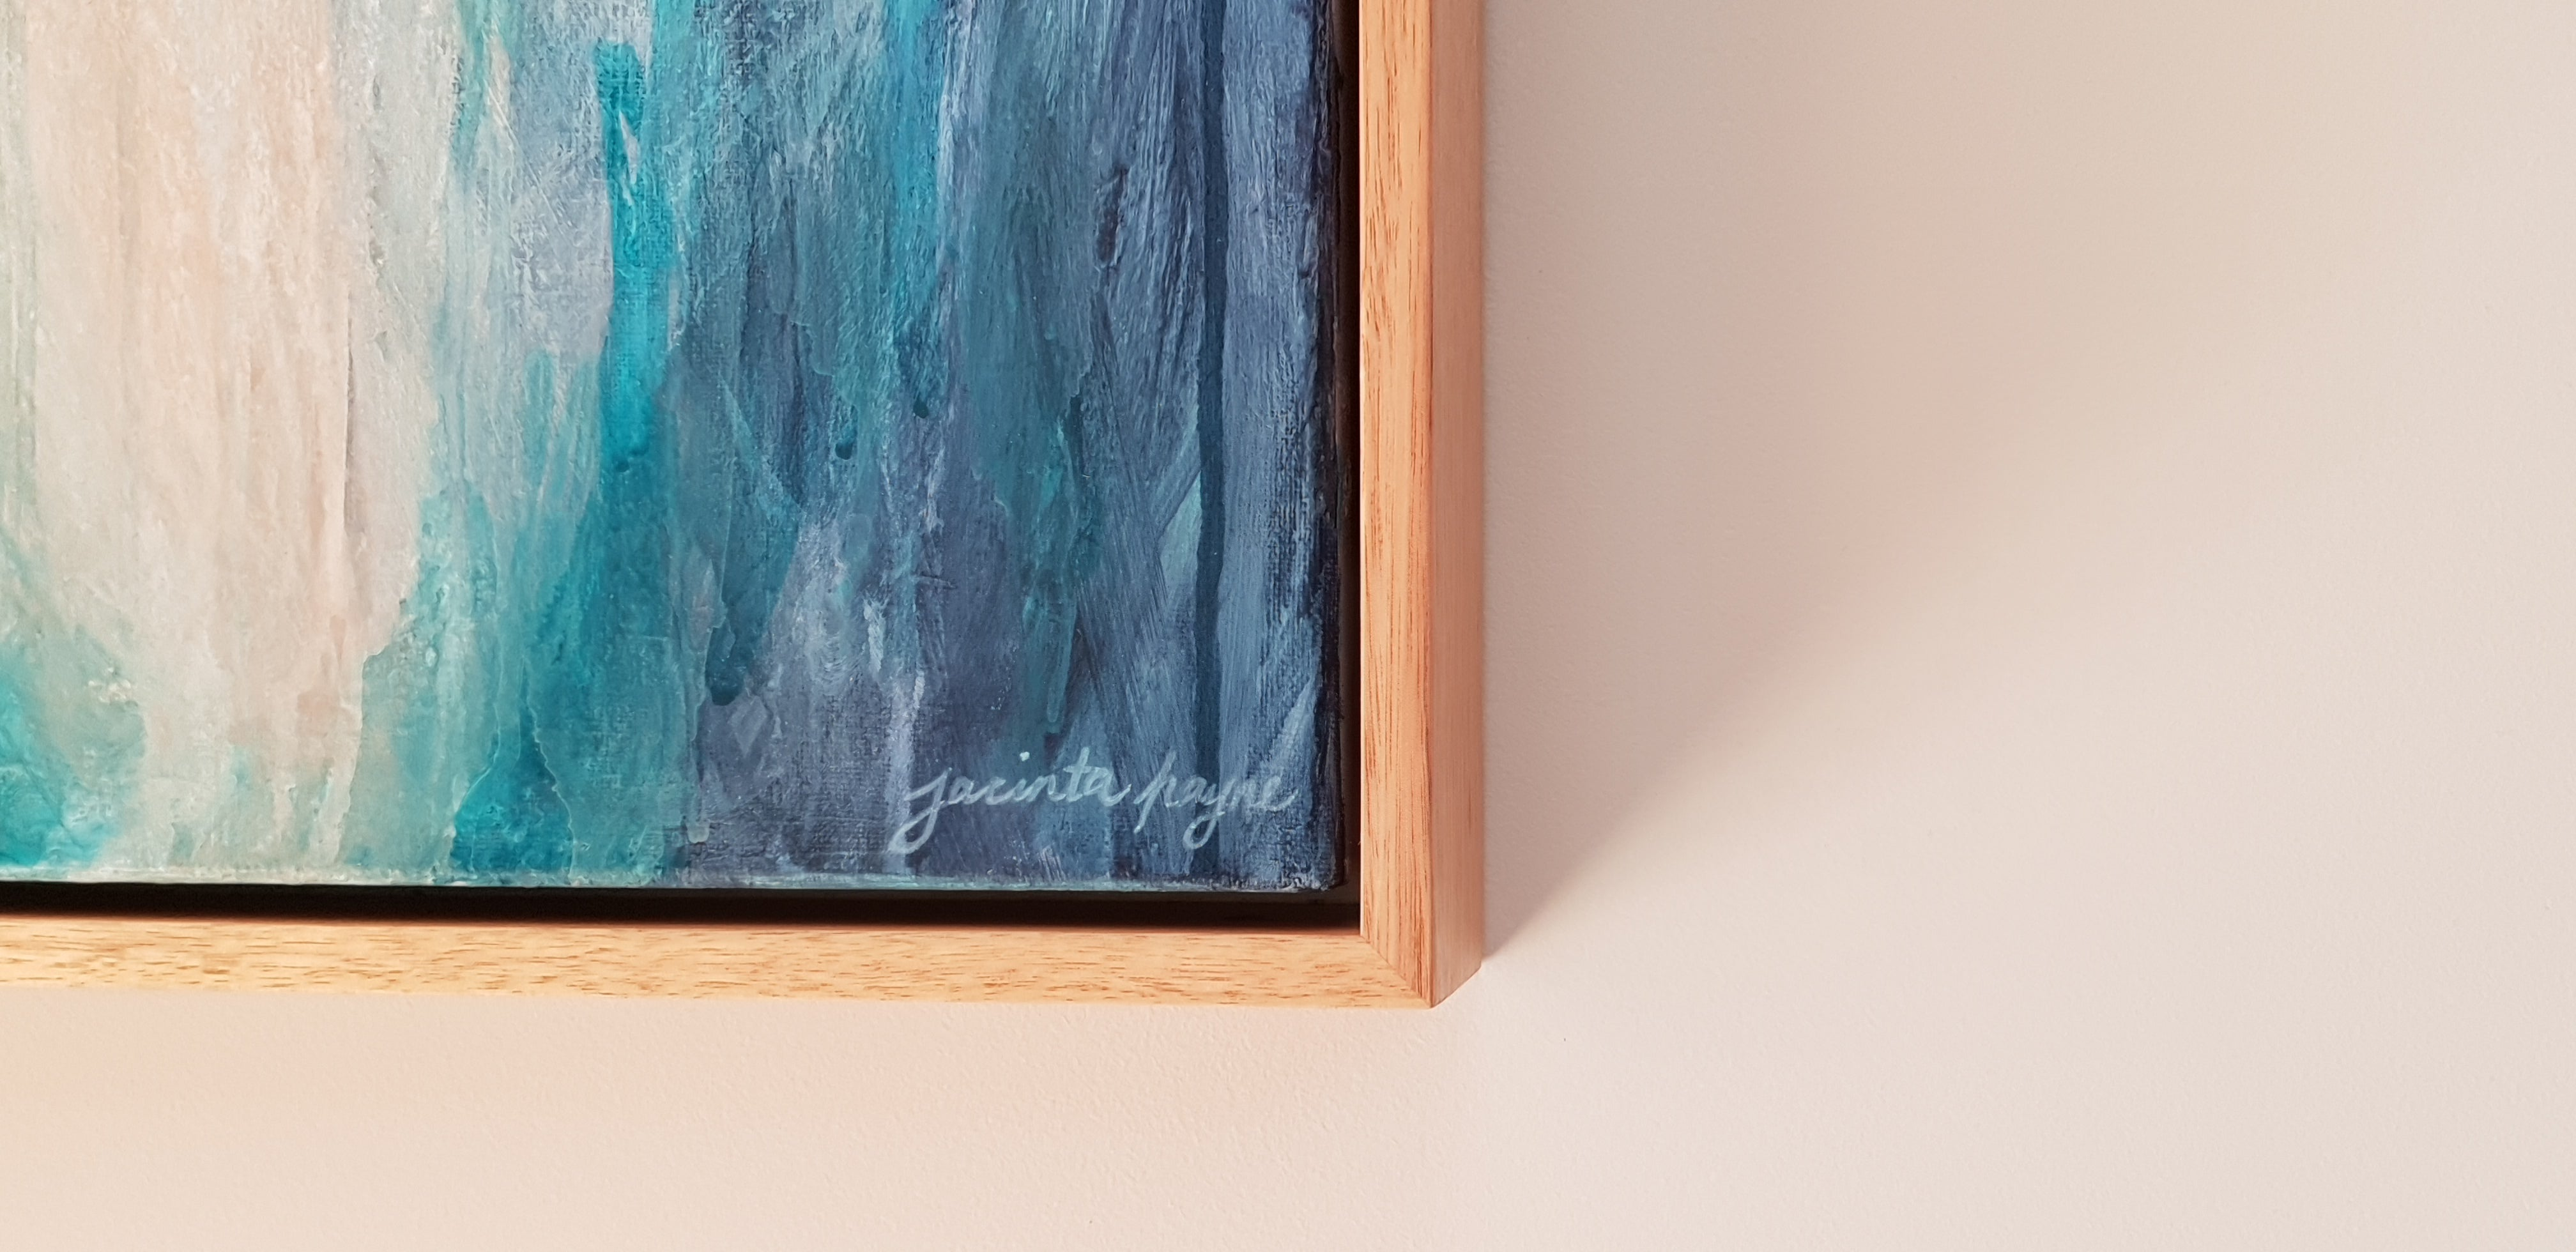 Treading Lightly, abstract painting, custom framed in PEFC Sustainable Australian hardwood